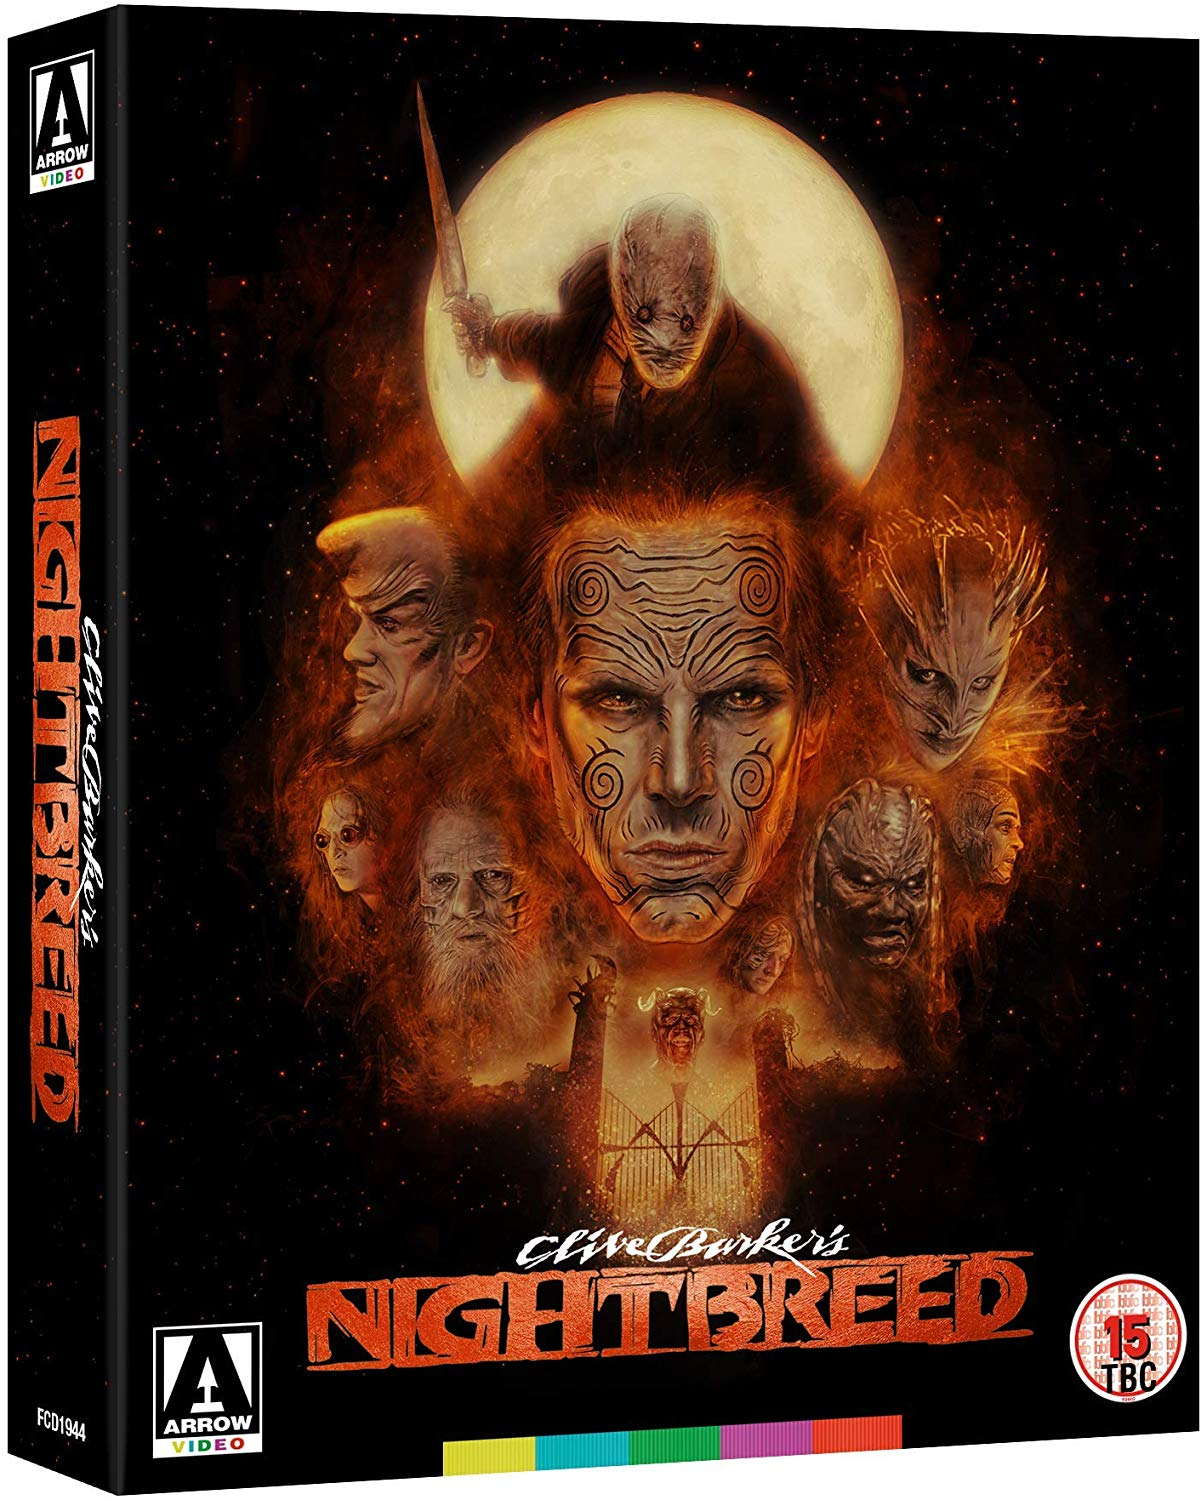 Buy Nightbreed (Limited Edition)